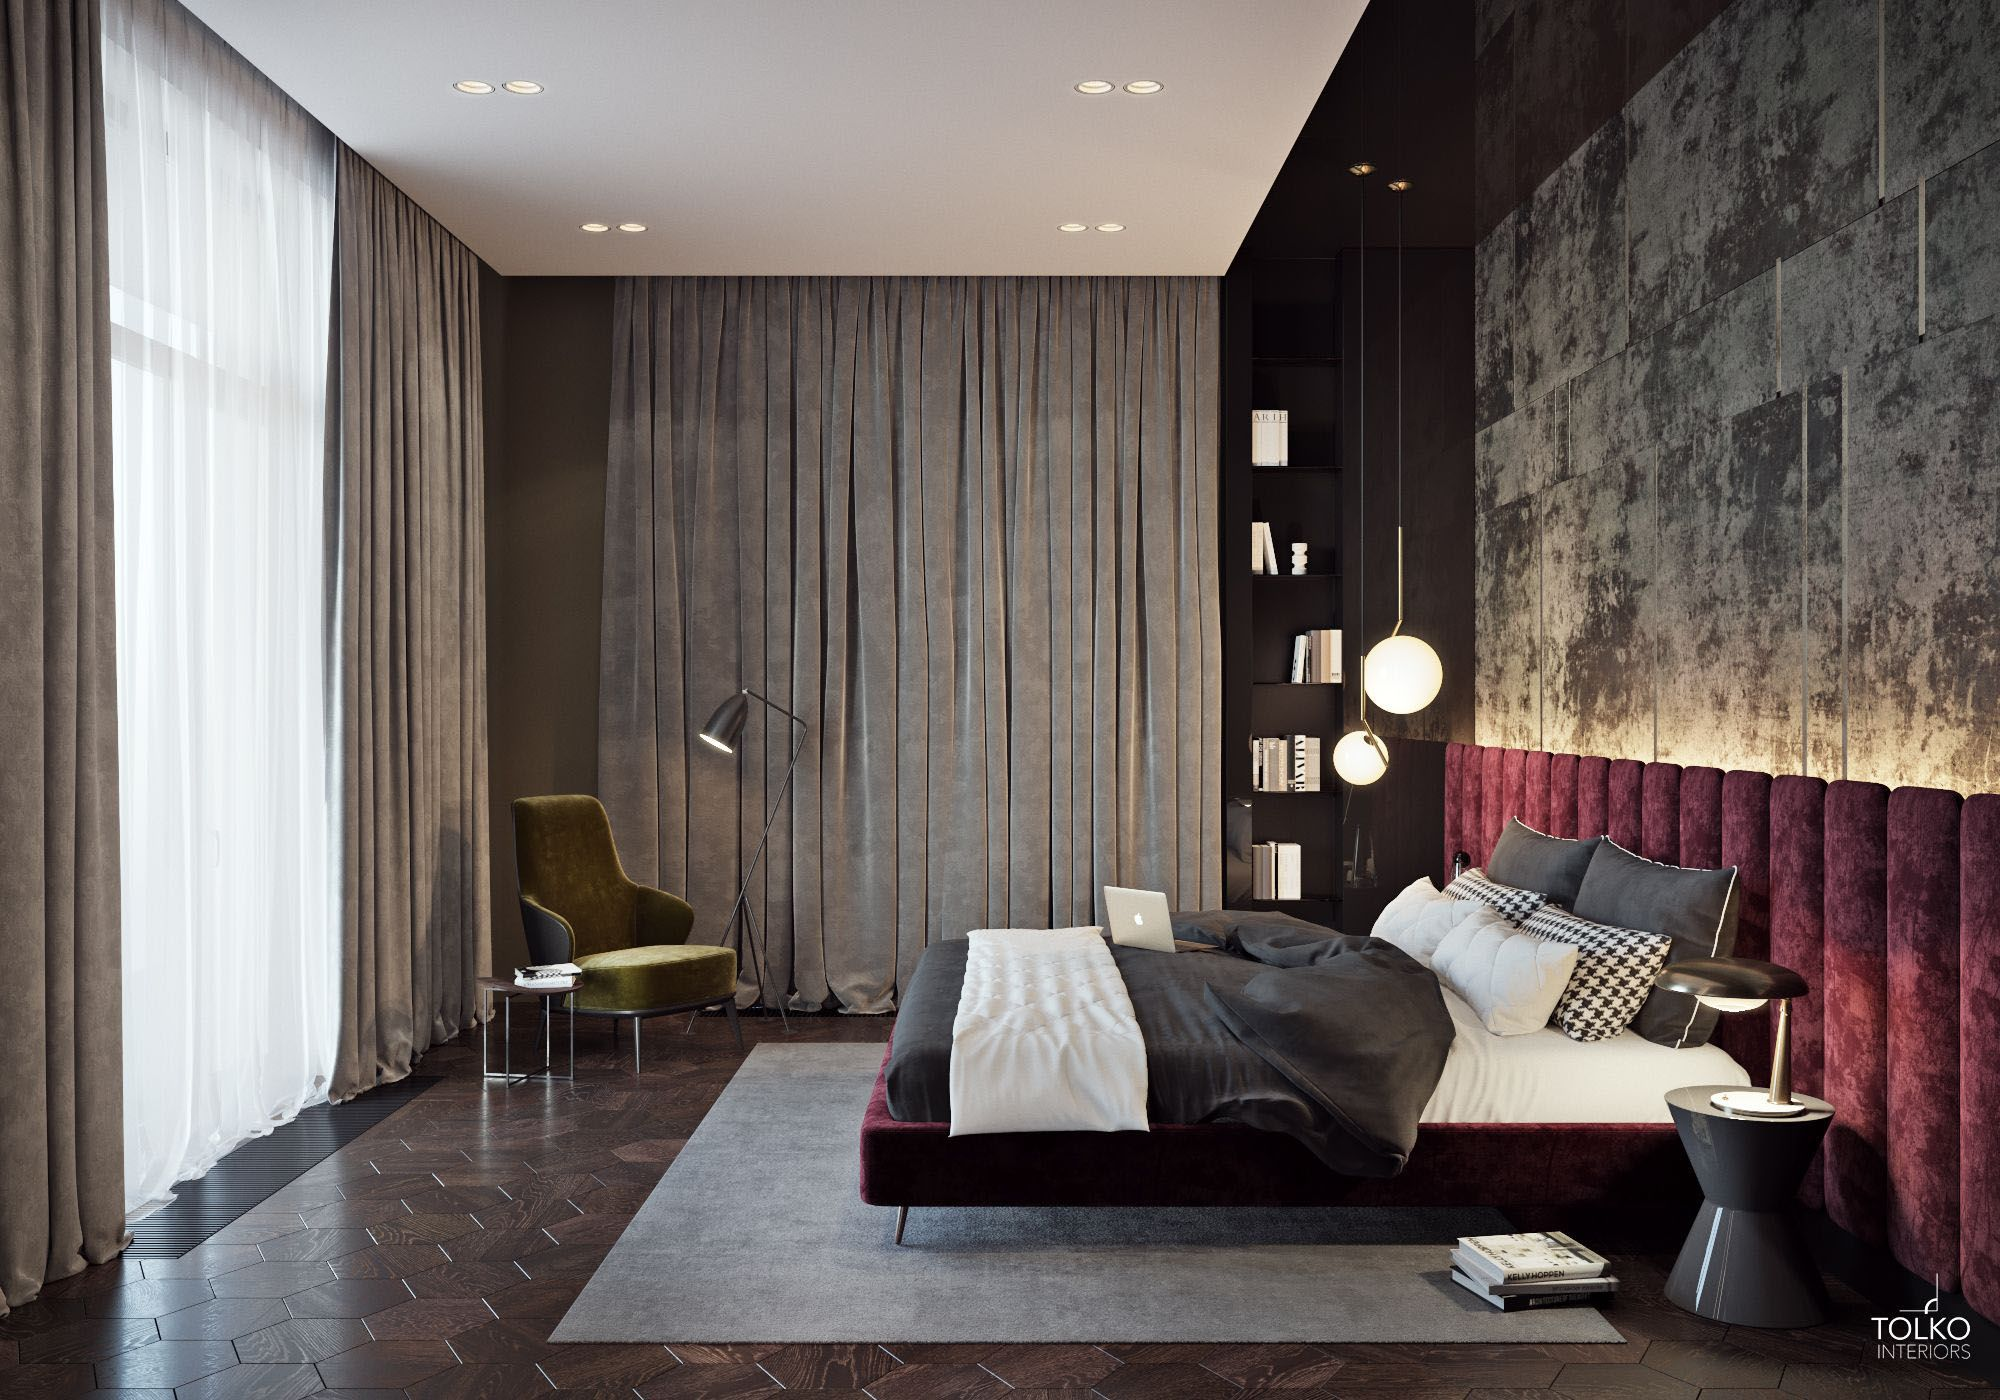 10 Tiny Small Apartment Layout Concepts (10)  Modern luxury